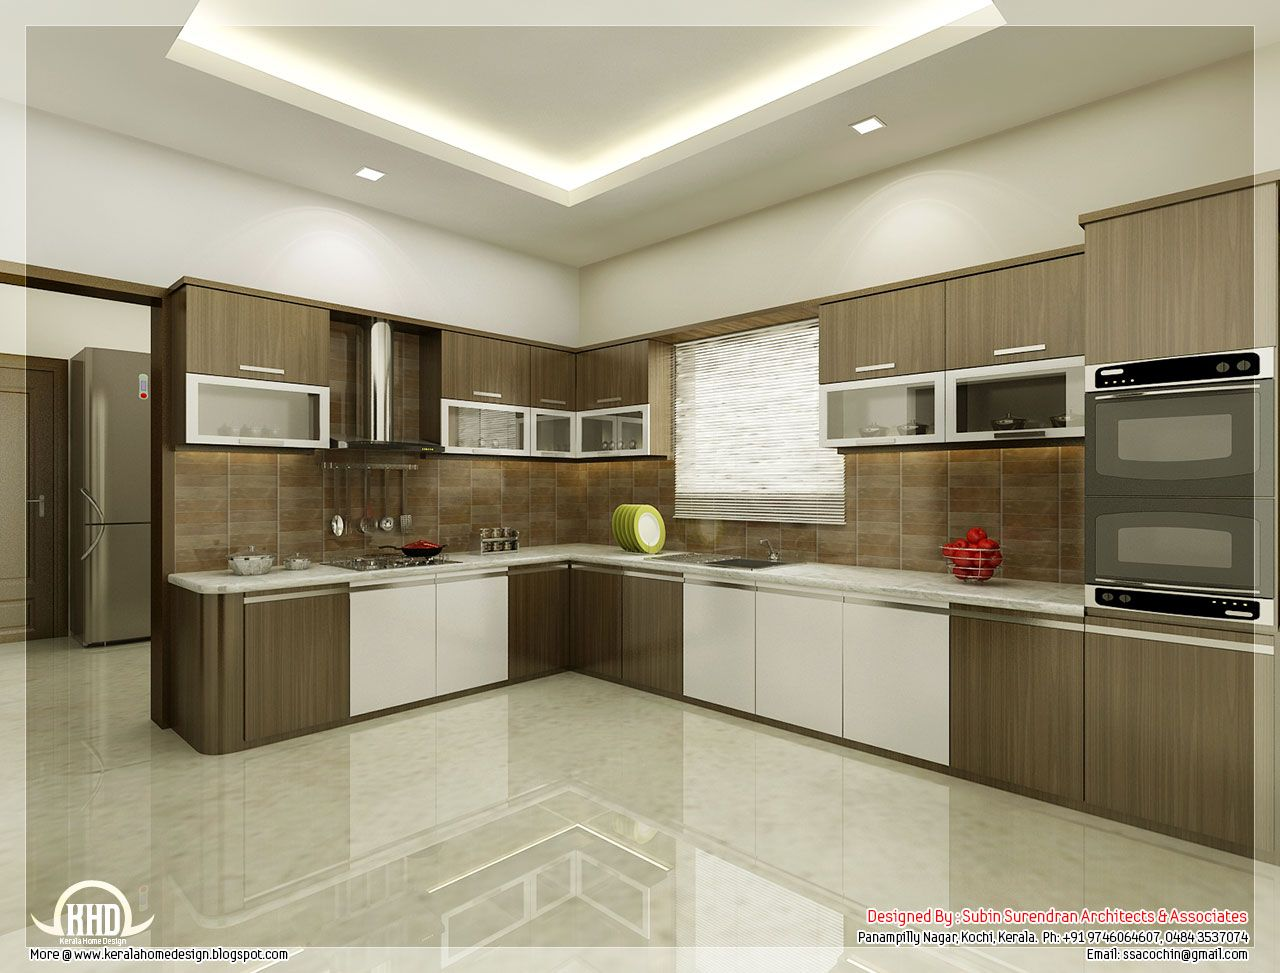 Superbe Kerala Kitchen Interior Design Modular Kitchen Kerala Kerala Kitchen  Kitchen Interior Views Ss Architects Cochin Home